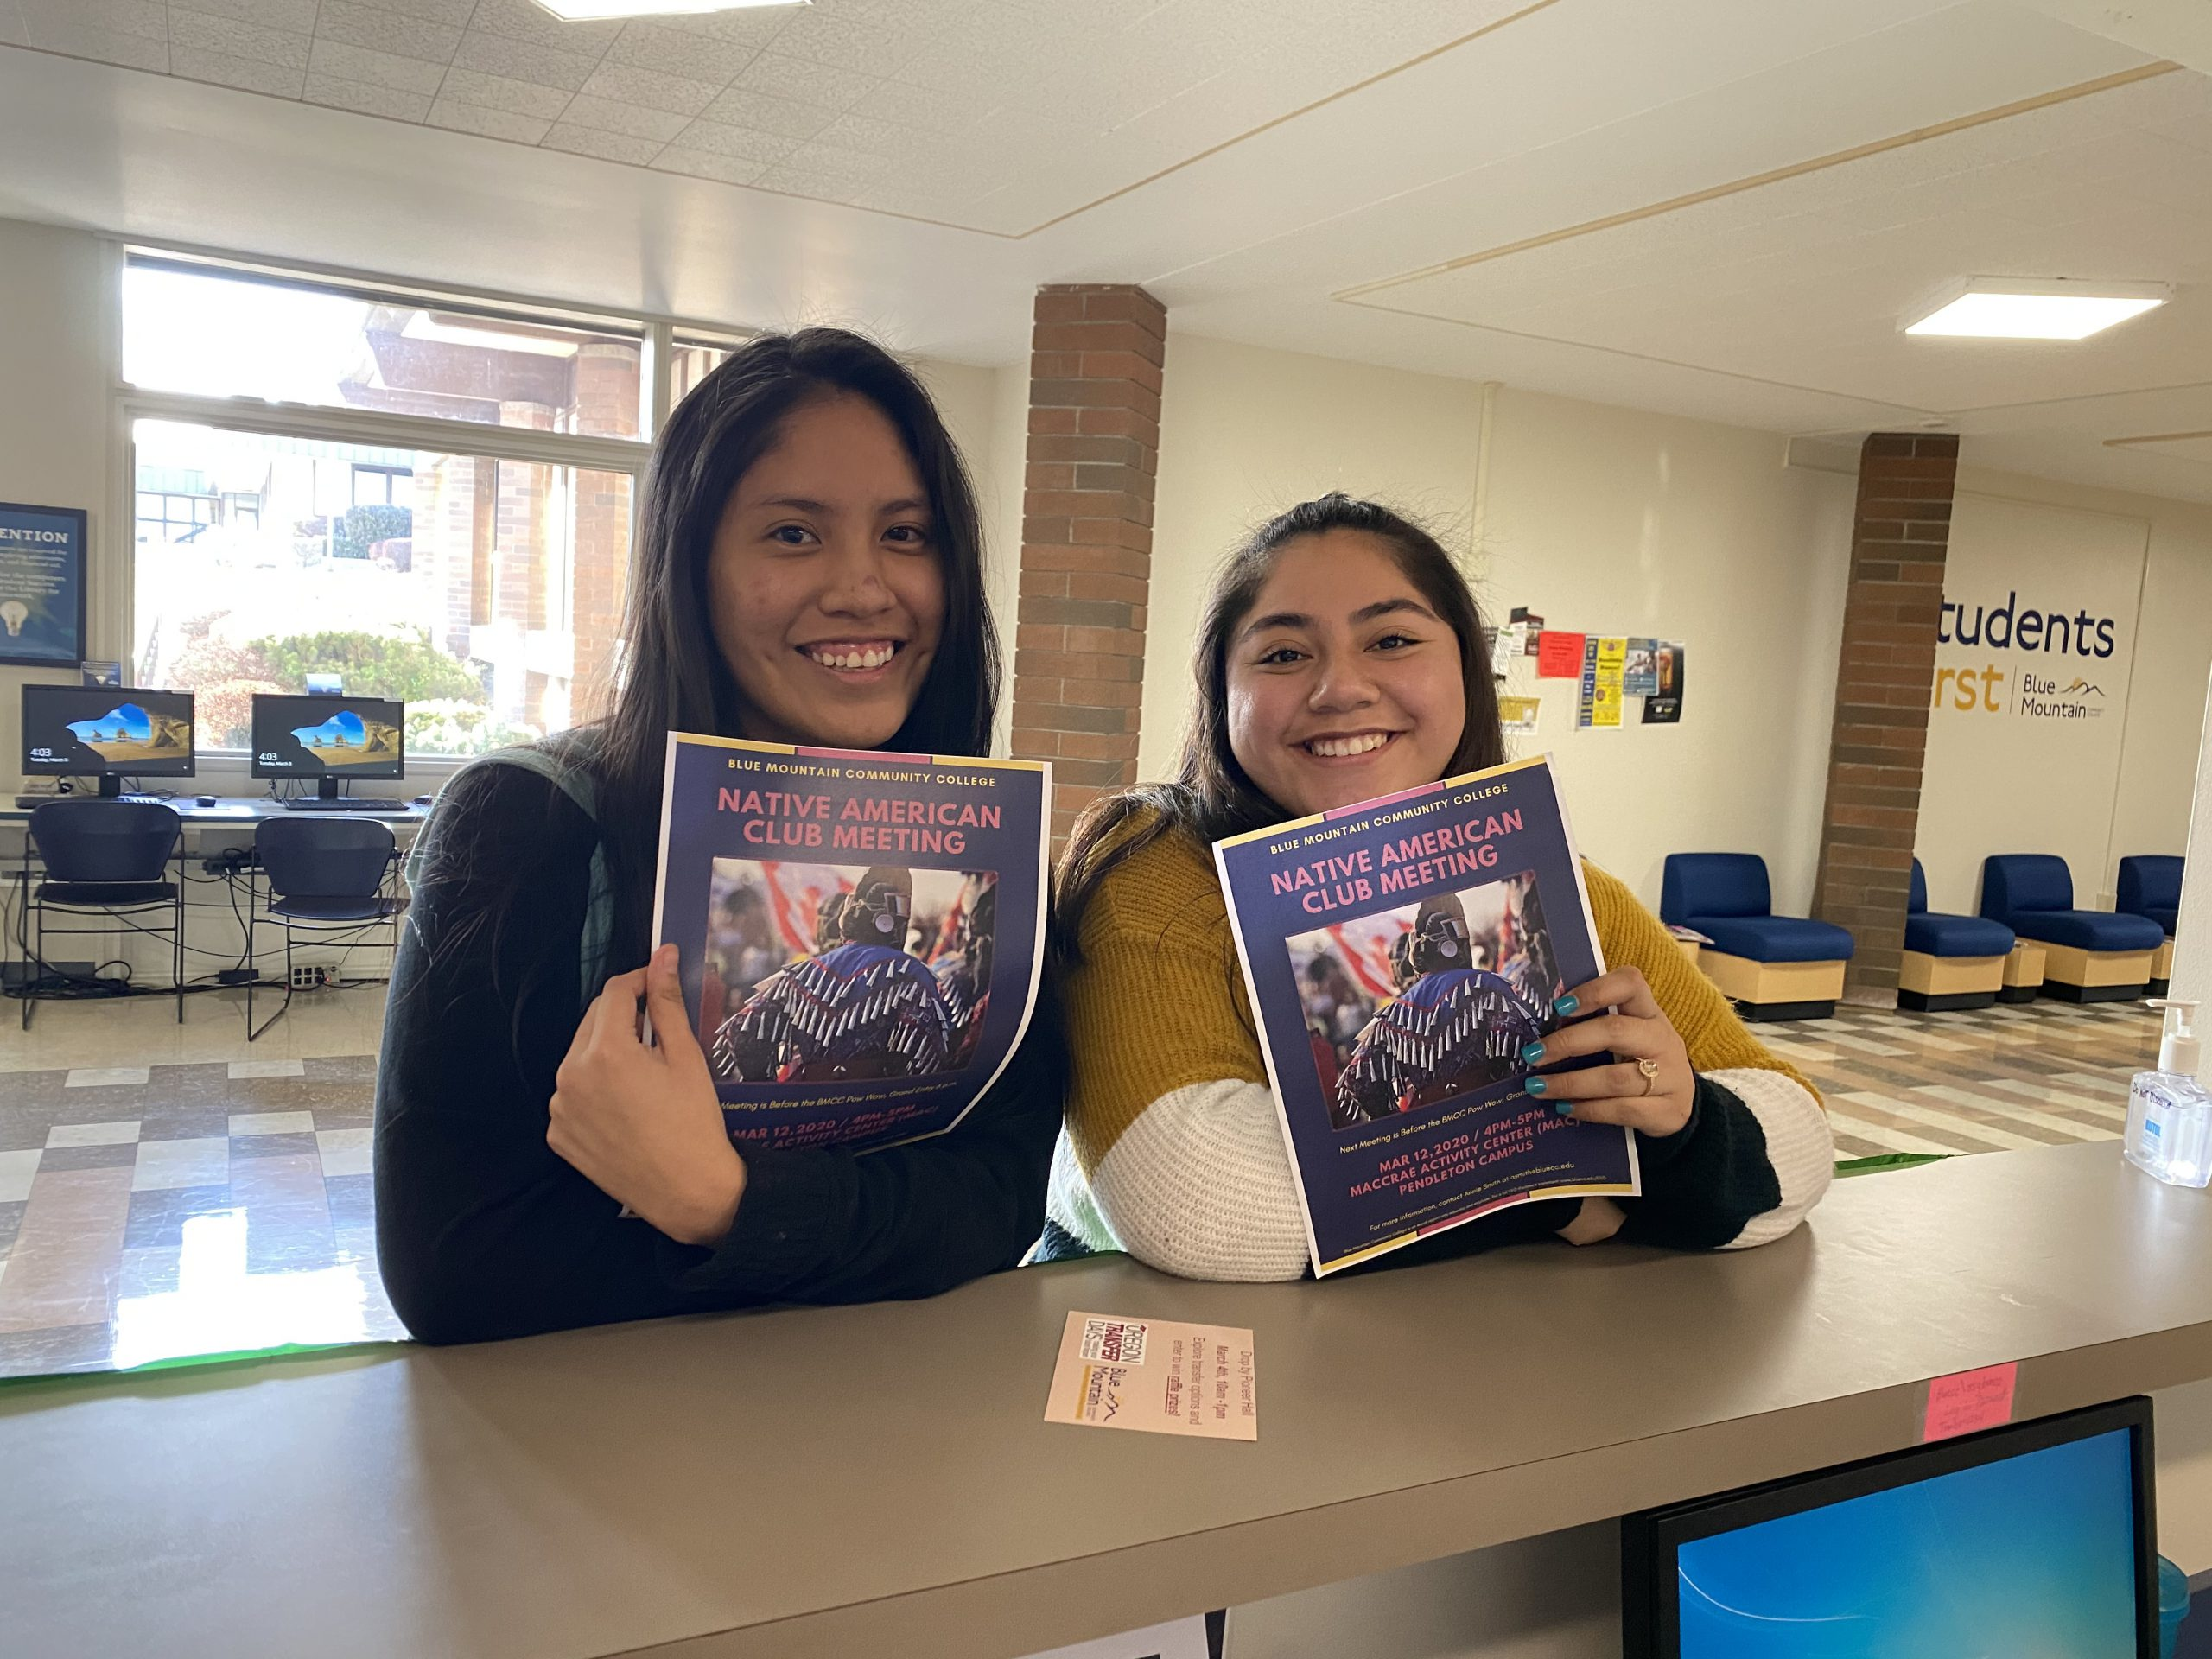 Two members of the Native American Club hold up club flyers.